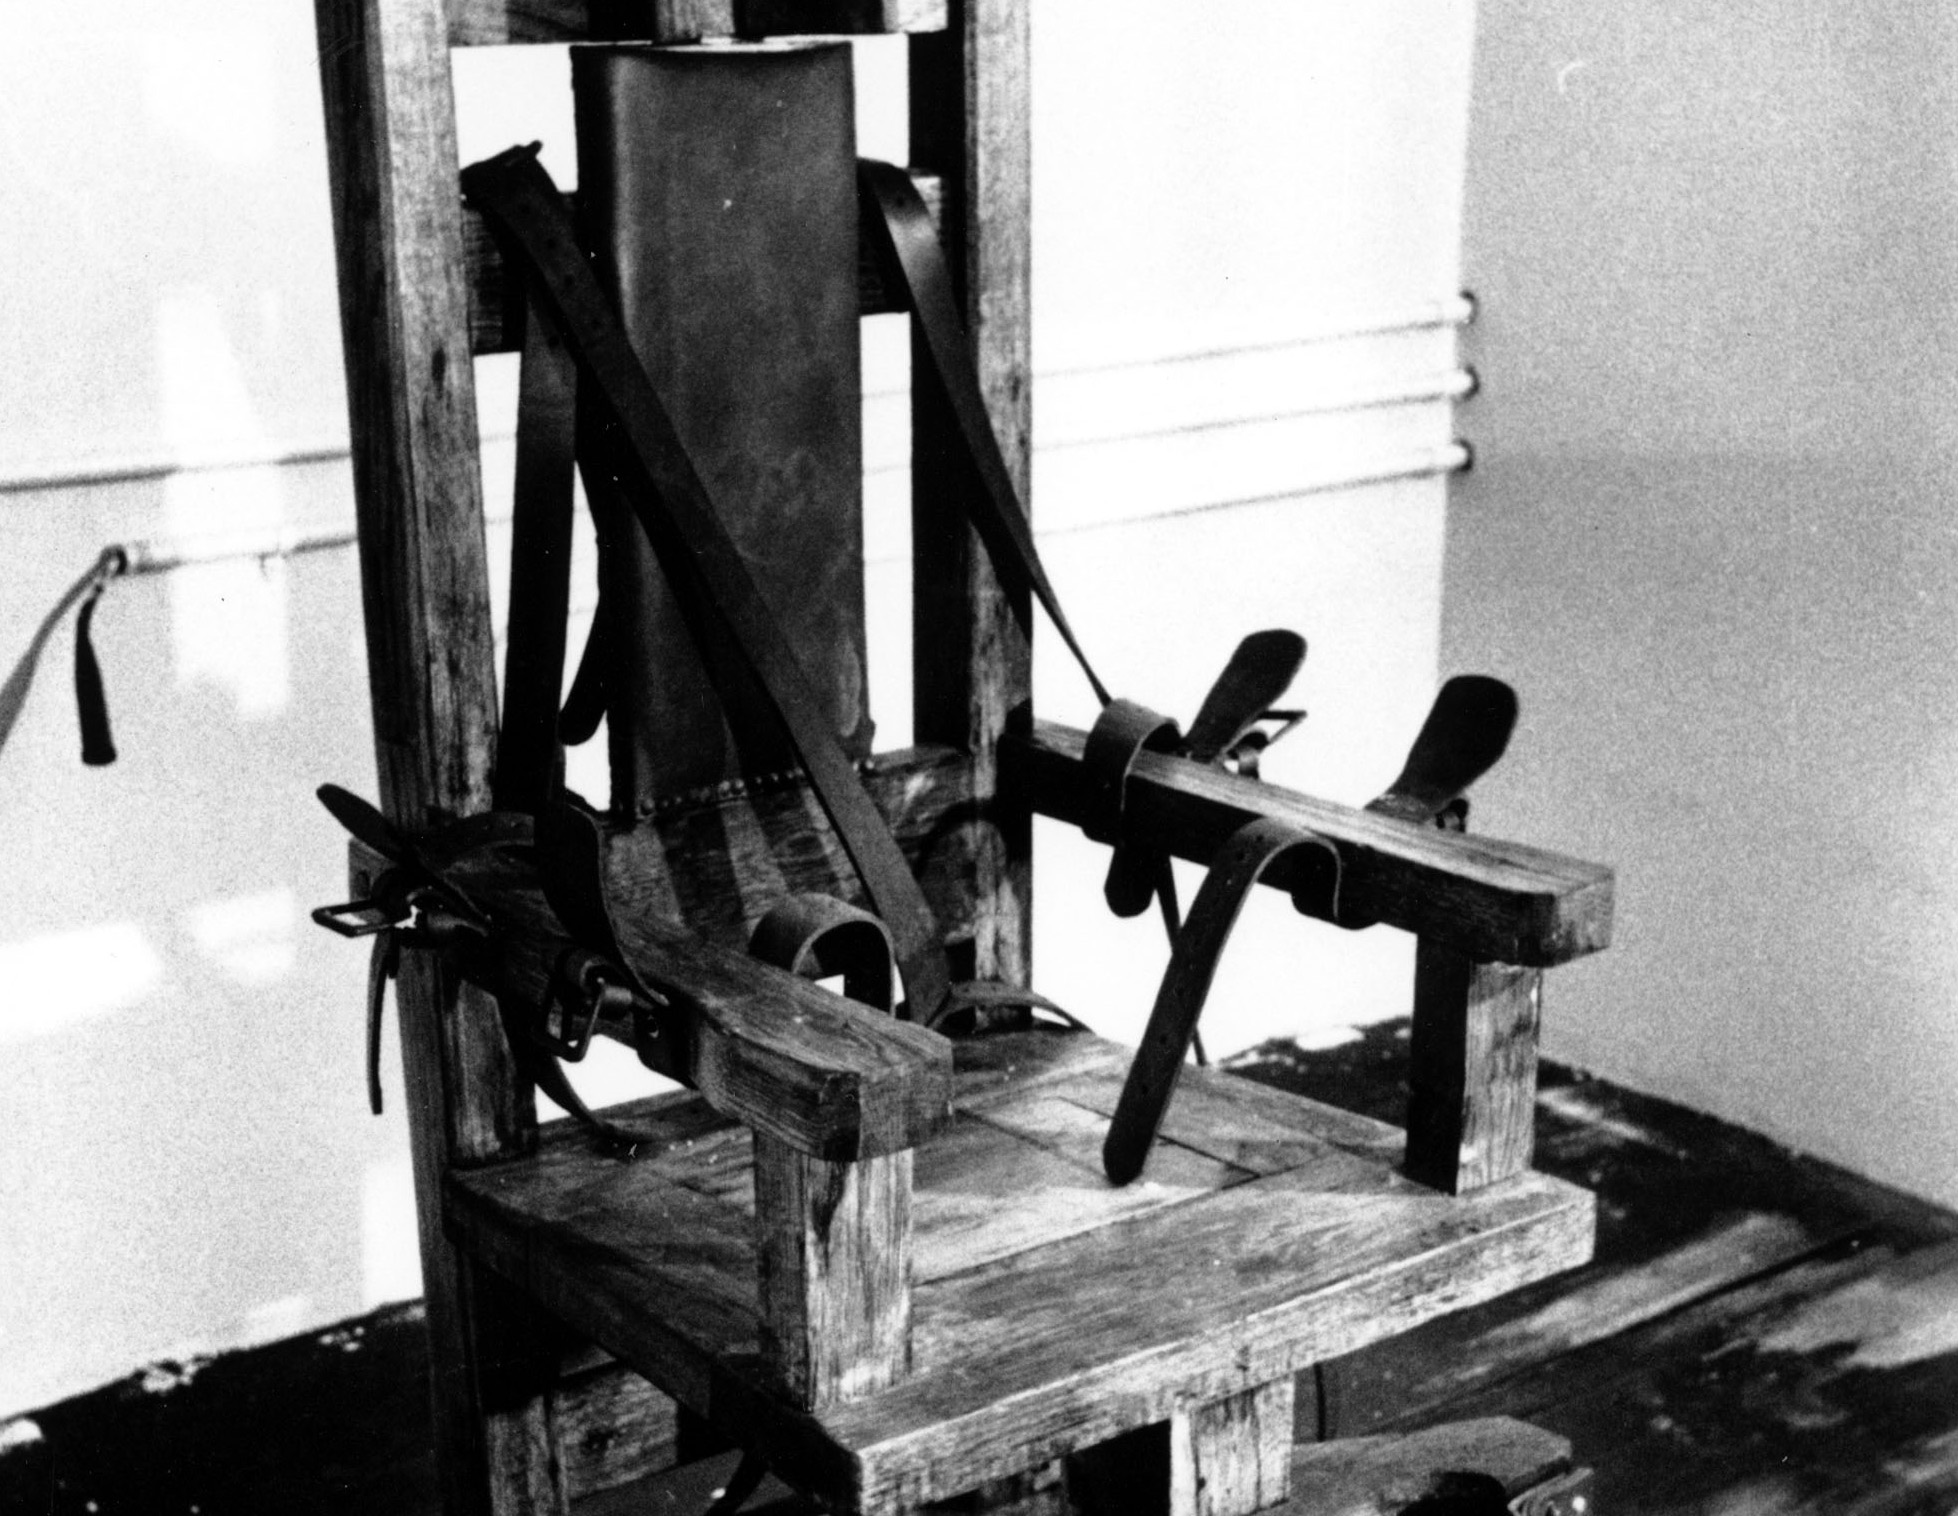 the electric chair I've seen men put to death in the electric chair and by lethal injectioni know which one timothy mcveigh deserves.